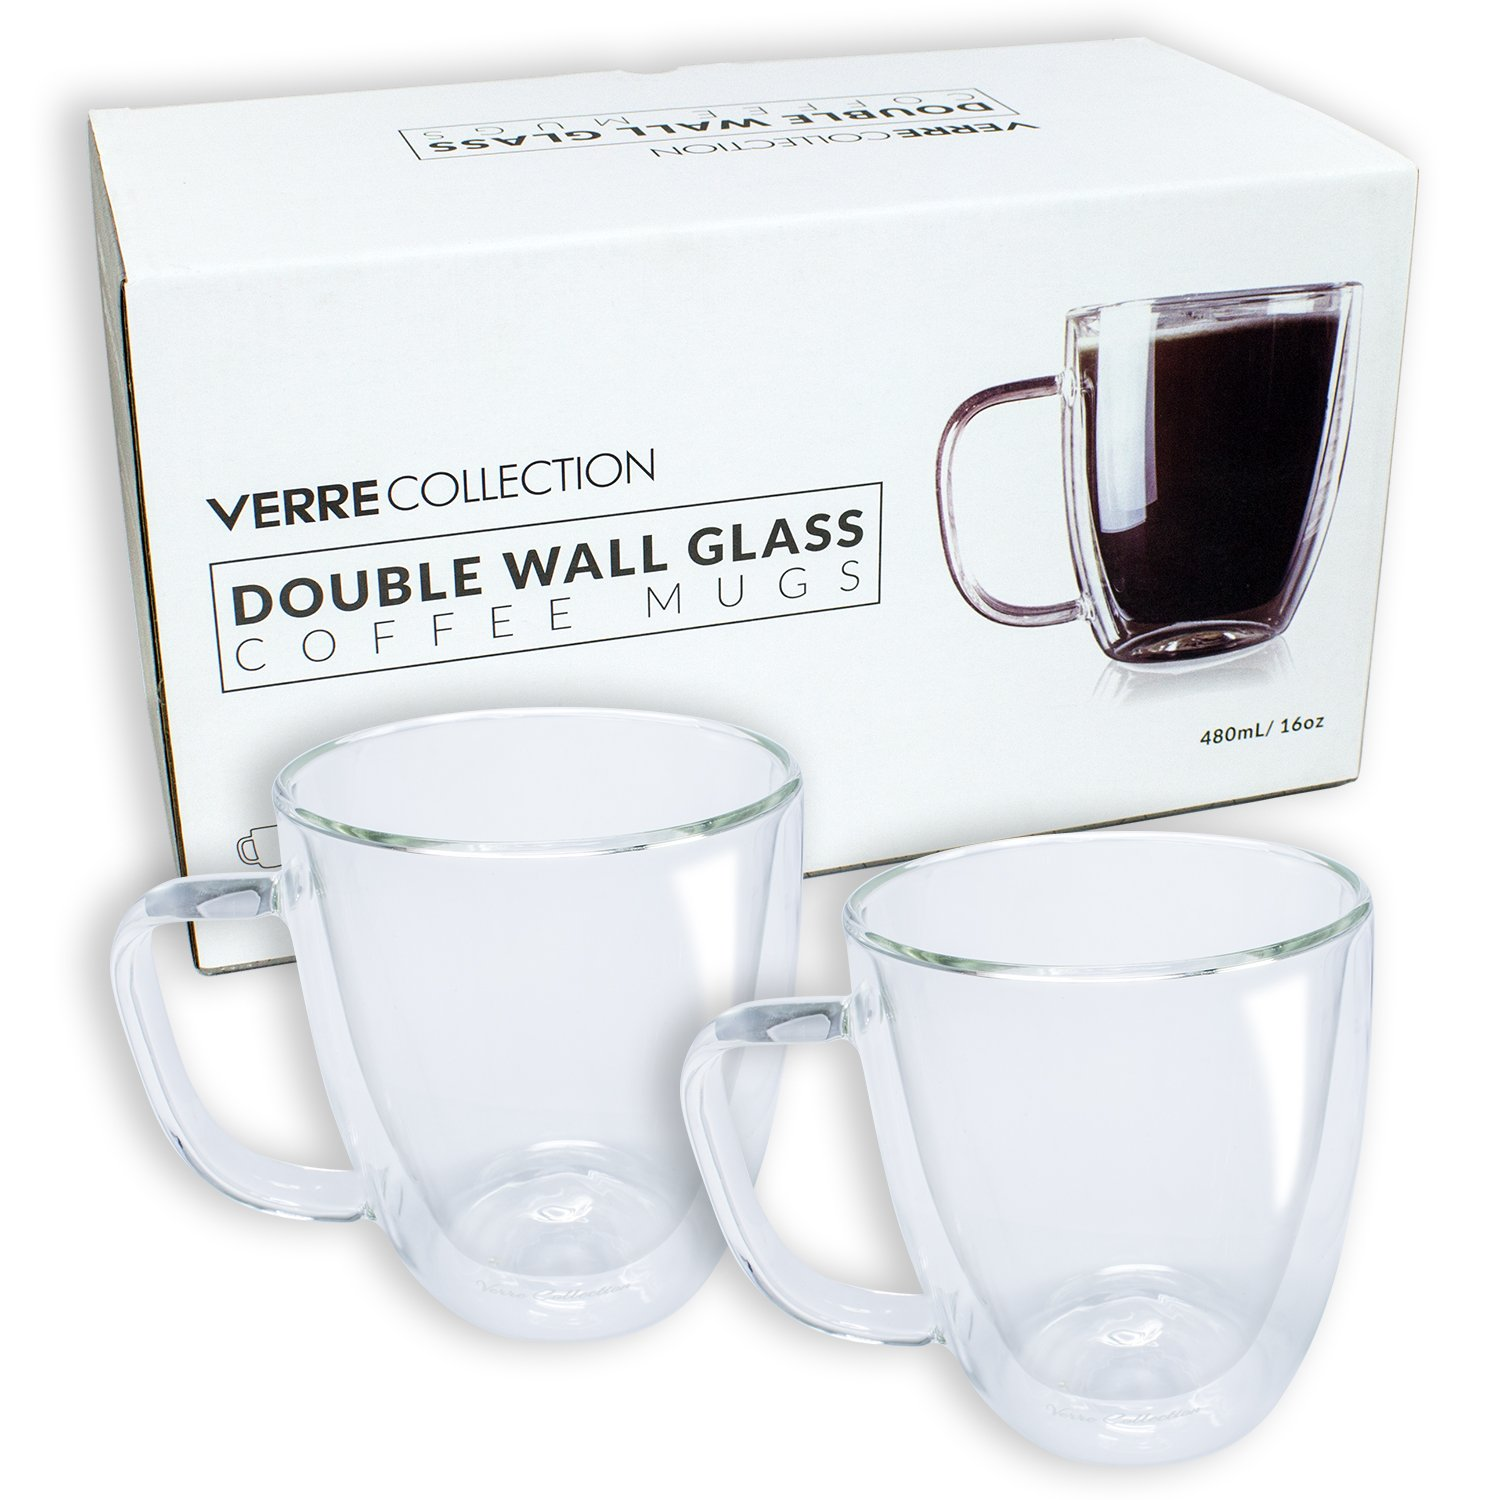 Double Wall Glass Espresso Latte Cappuccino Mug, Coffee Cup | Set of 2 (2, 10.5 oz) Verre Collection